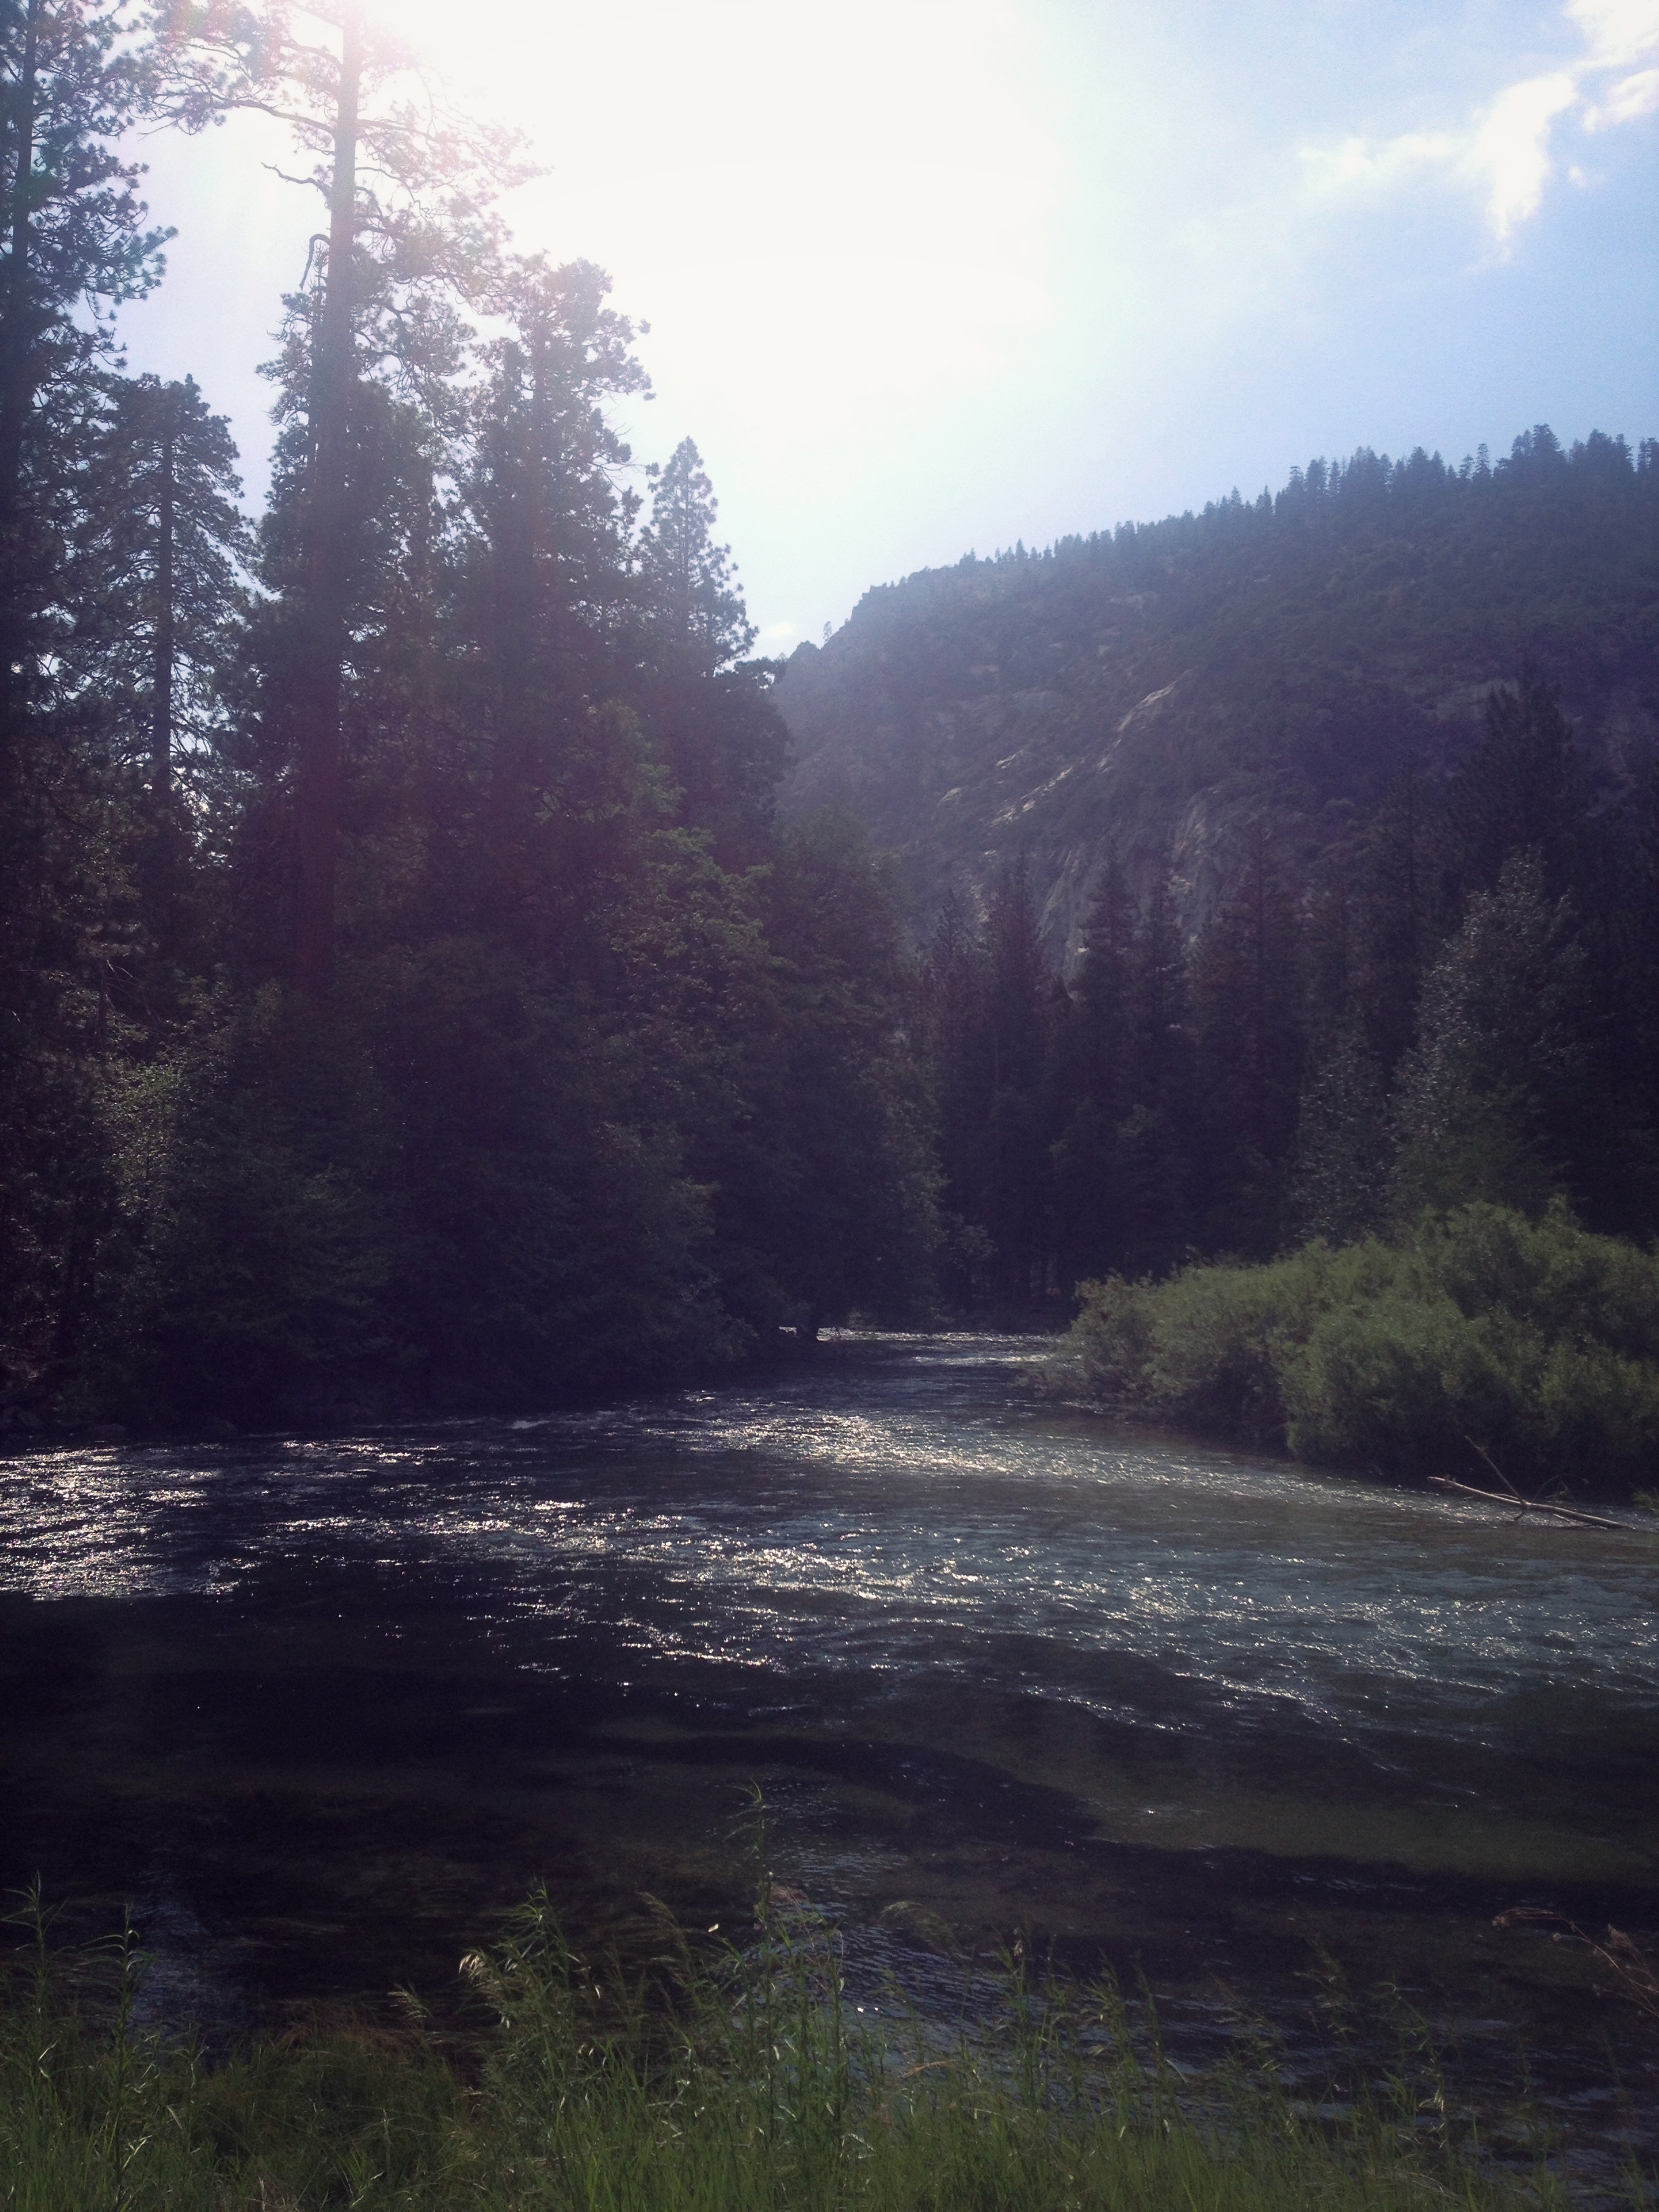 River in King's Canyon California